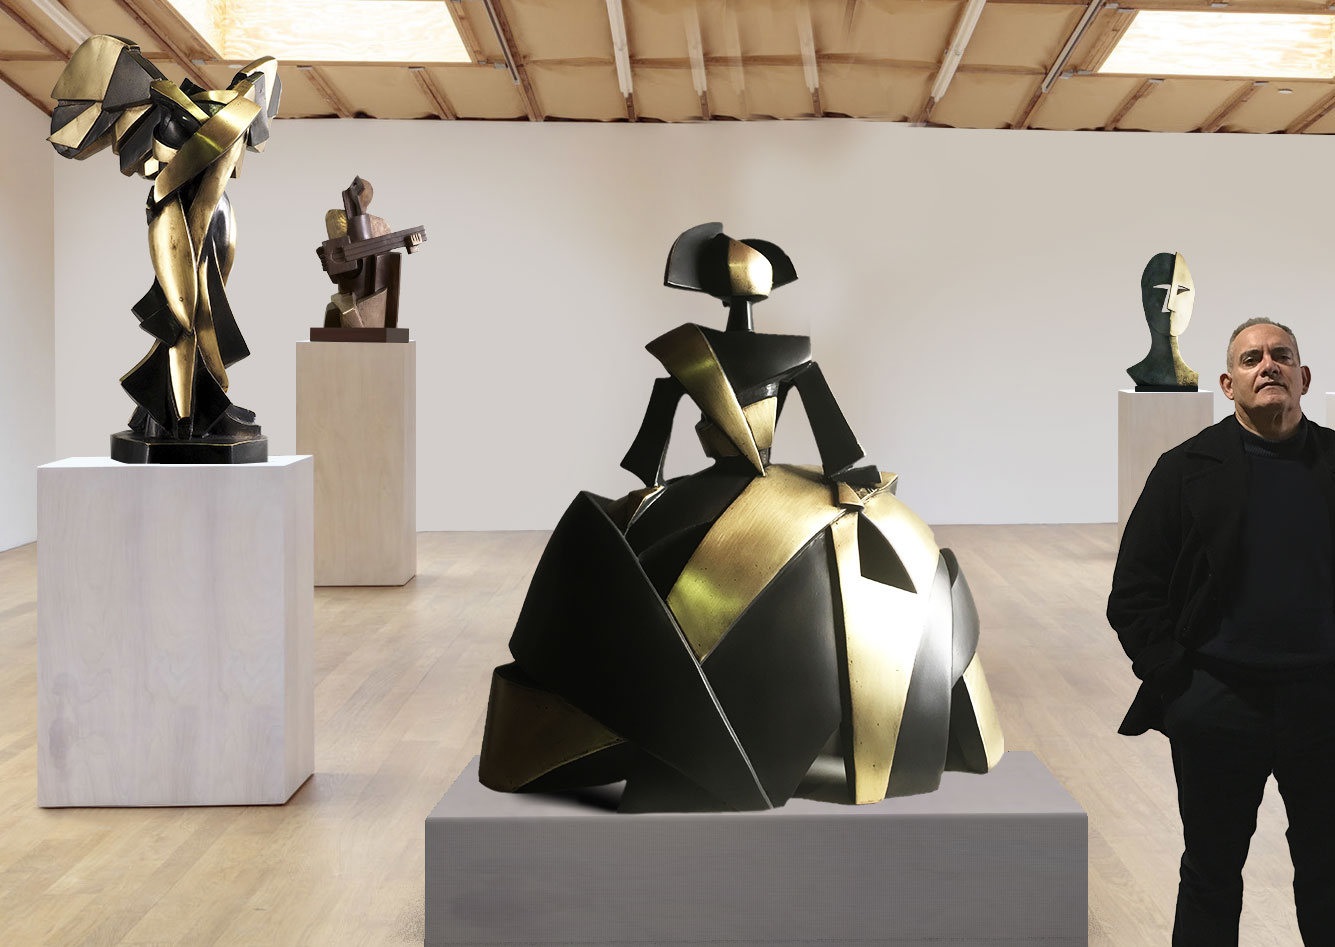 Exhibition of Cubist Sculptures by Miguel Guía in Germany